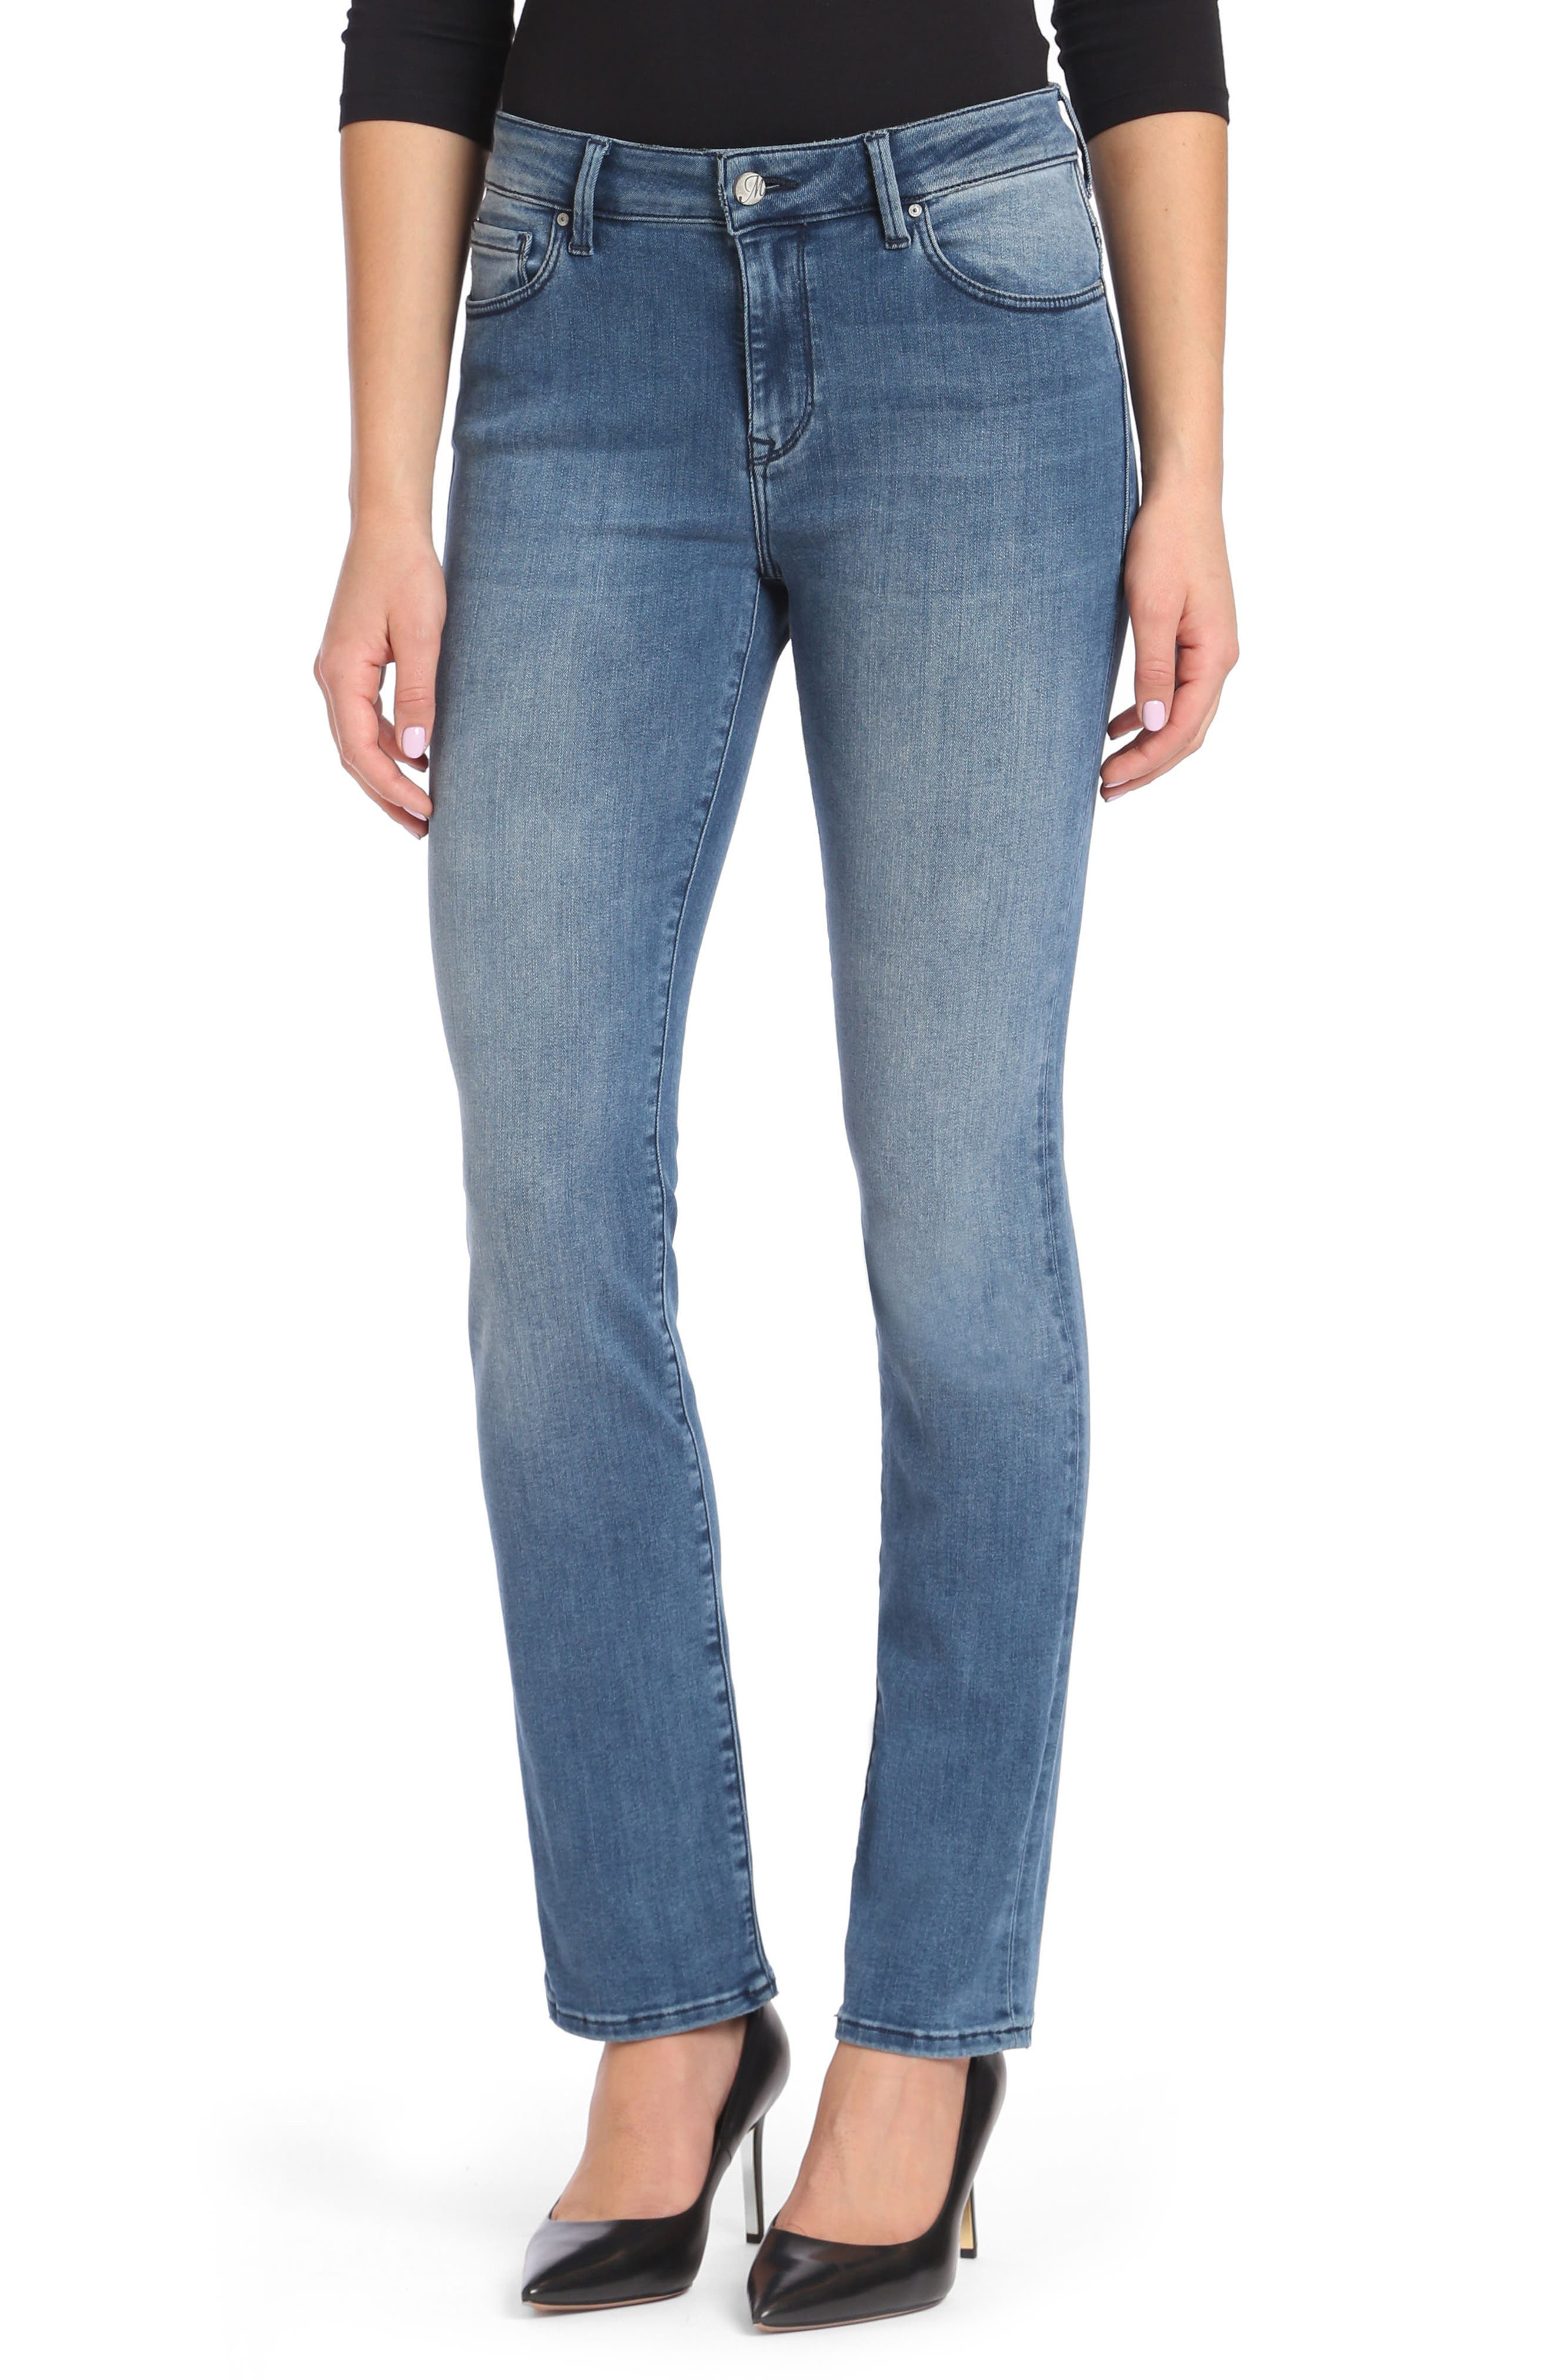 Kendra High Waist Straight Leg Jeans,                         Main,                         color, Light Foggy Blue Tribeca